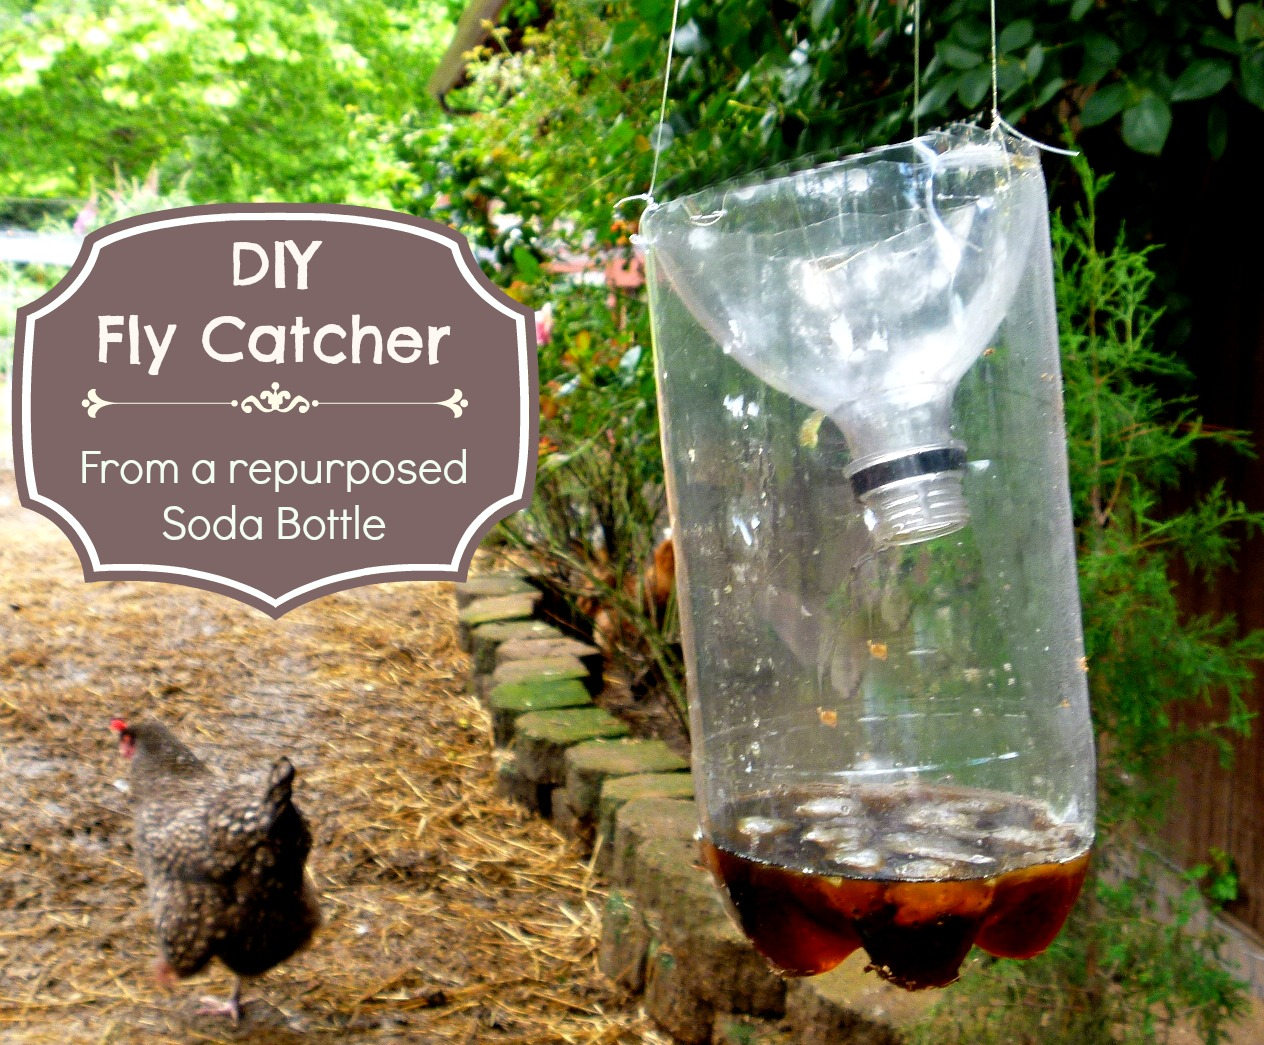 Ground Sheet Bunnings Got Flies Make This Easy Diy Fly Catcher Out Of A Soda